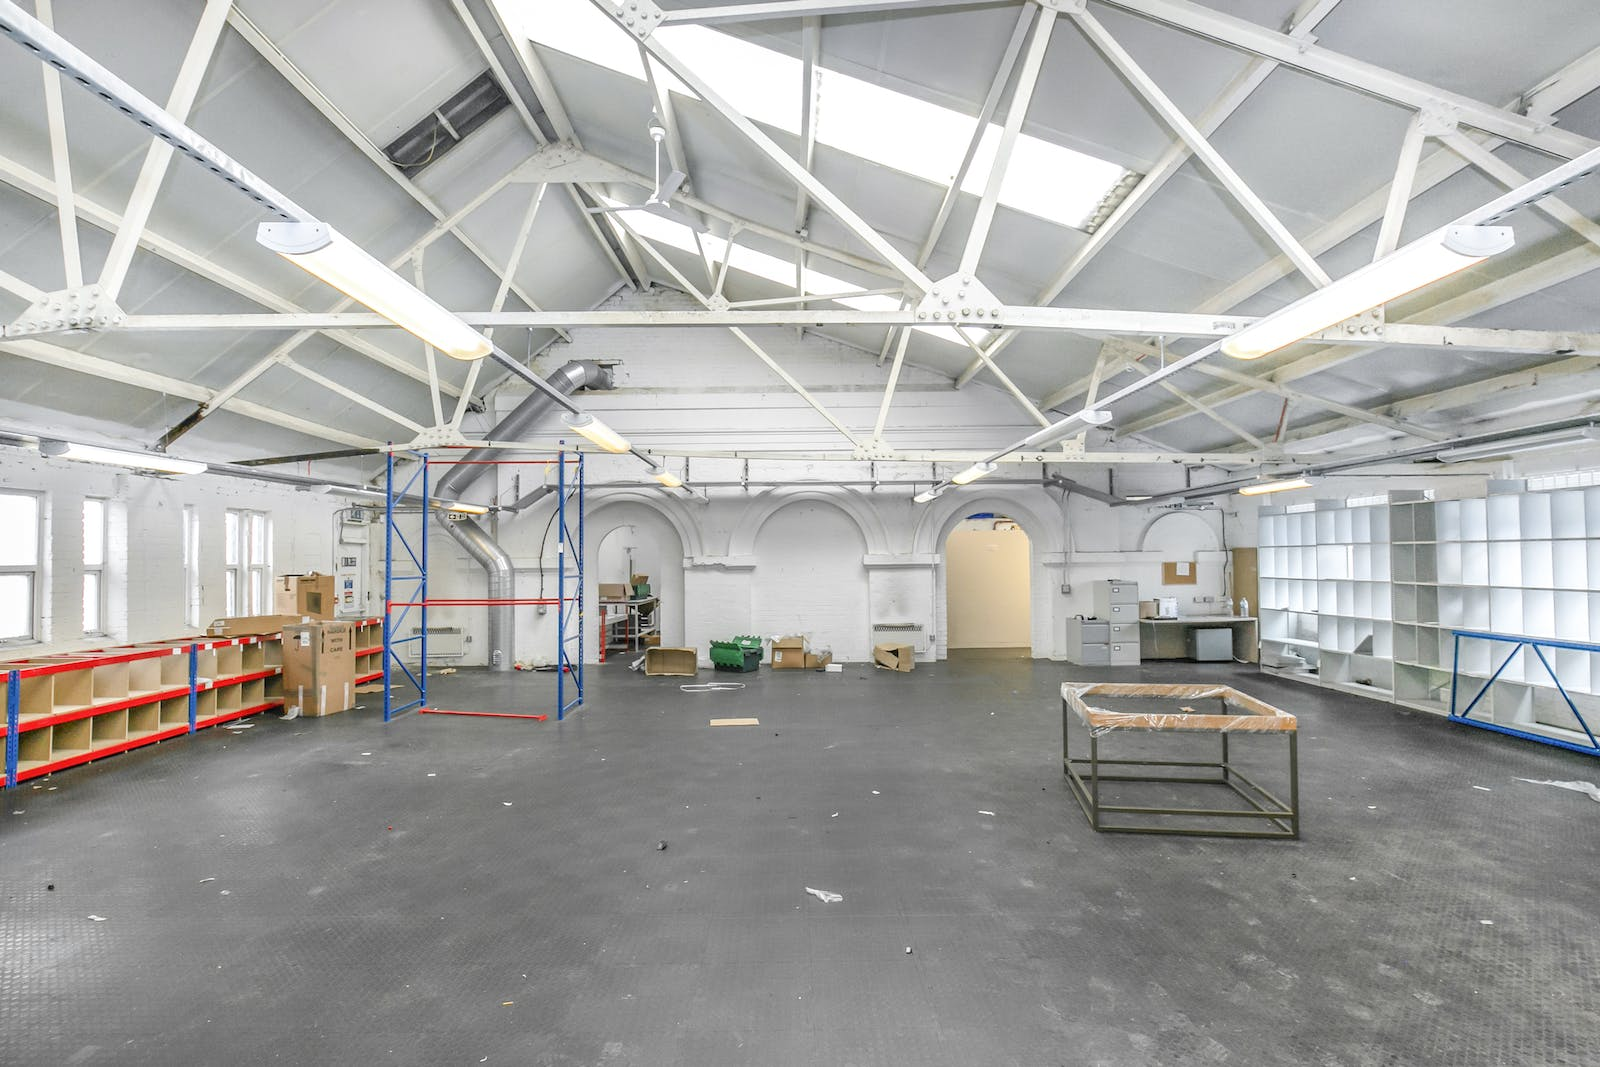 7-9 Chatham Place, London, Office / Industrial / Trade Counter / Retail / Showroom / Leisure / D2 (Assembly and Leisure) To Let - S25C7996.jpg